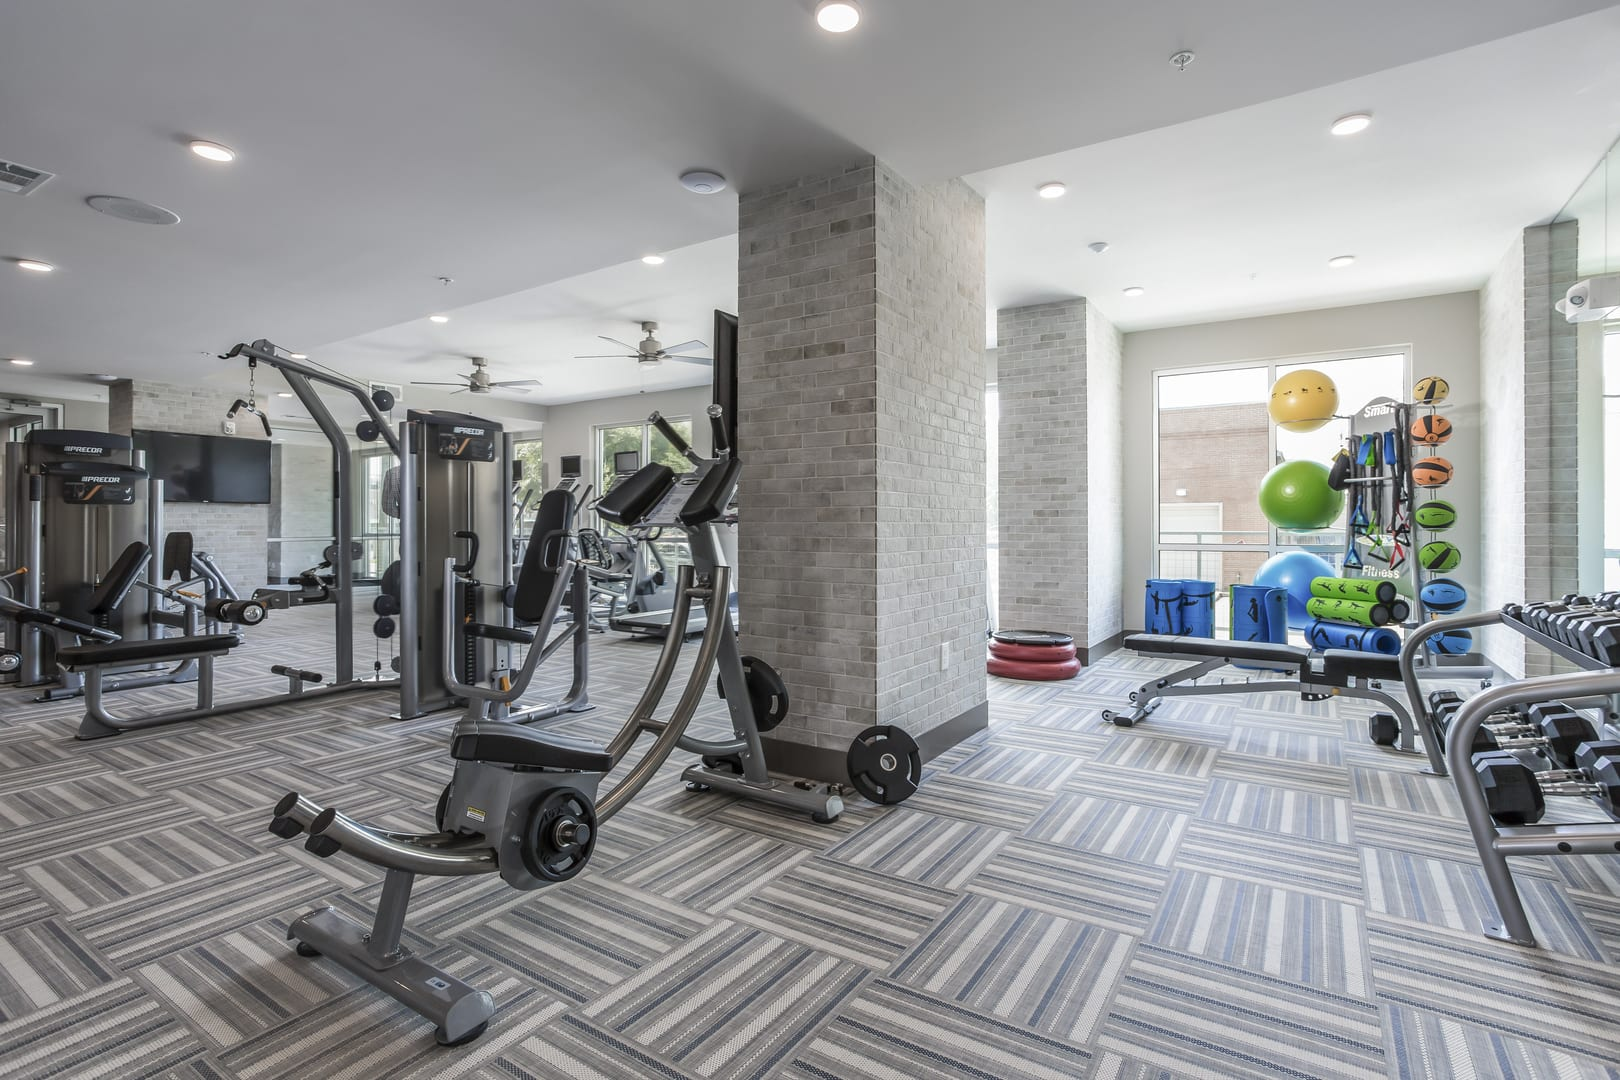 Fitness Center With Cardio And Weights at Azure Houston Apartments, Houston, TX, 77007